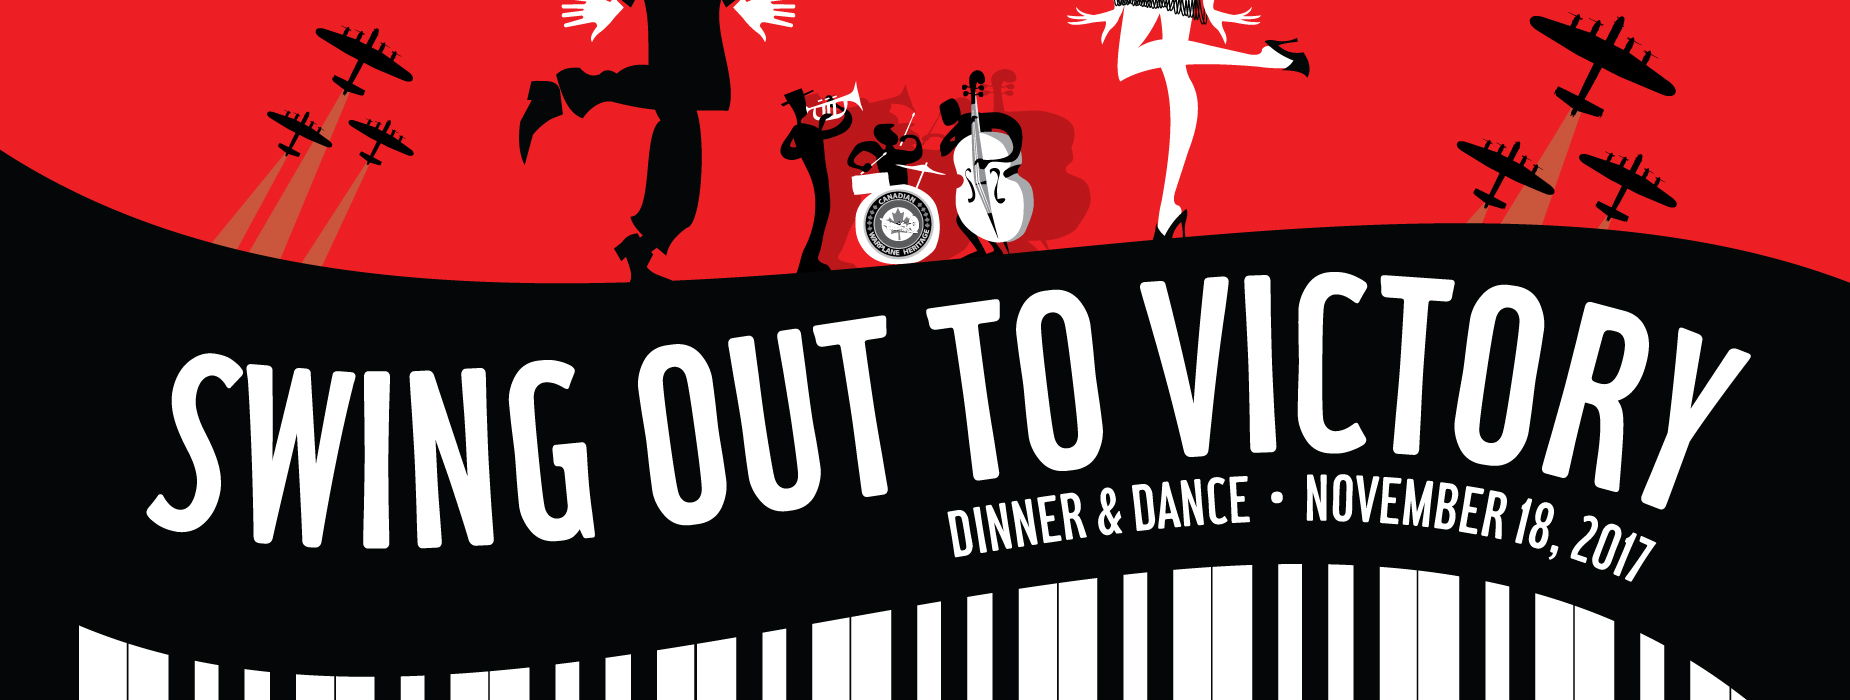 Banner Image for the Swing Out to Victory Dinner & Dance event